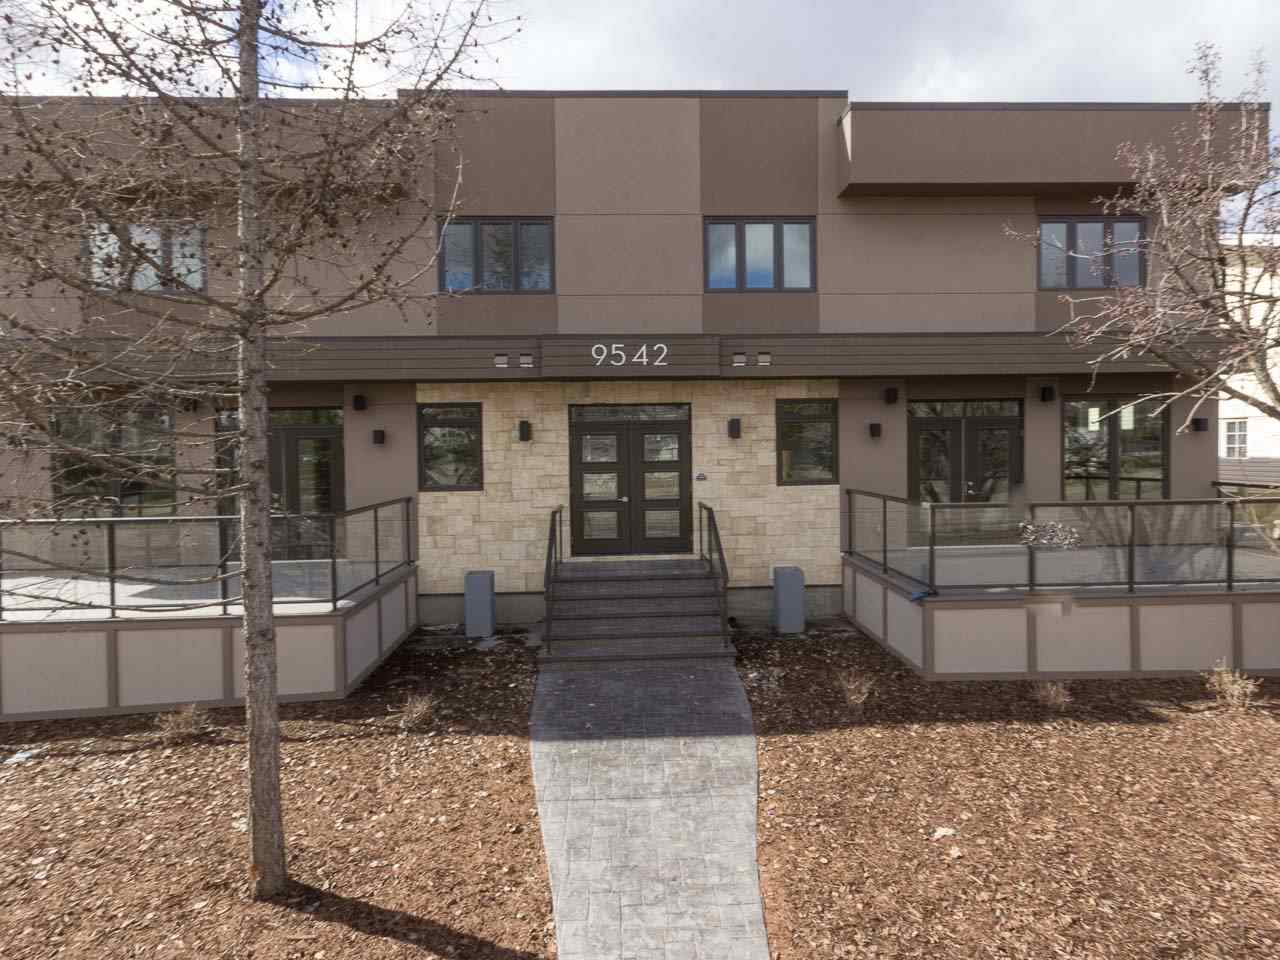 Main Photo: 3 9542 142 Street in Edmonton: Zone 10 Townhouse for sale : MLS(r) # E4058566